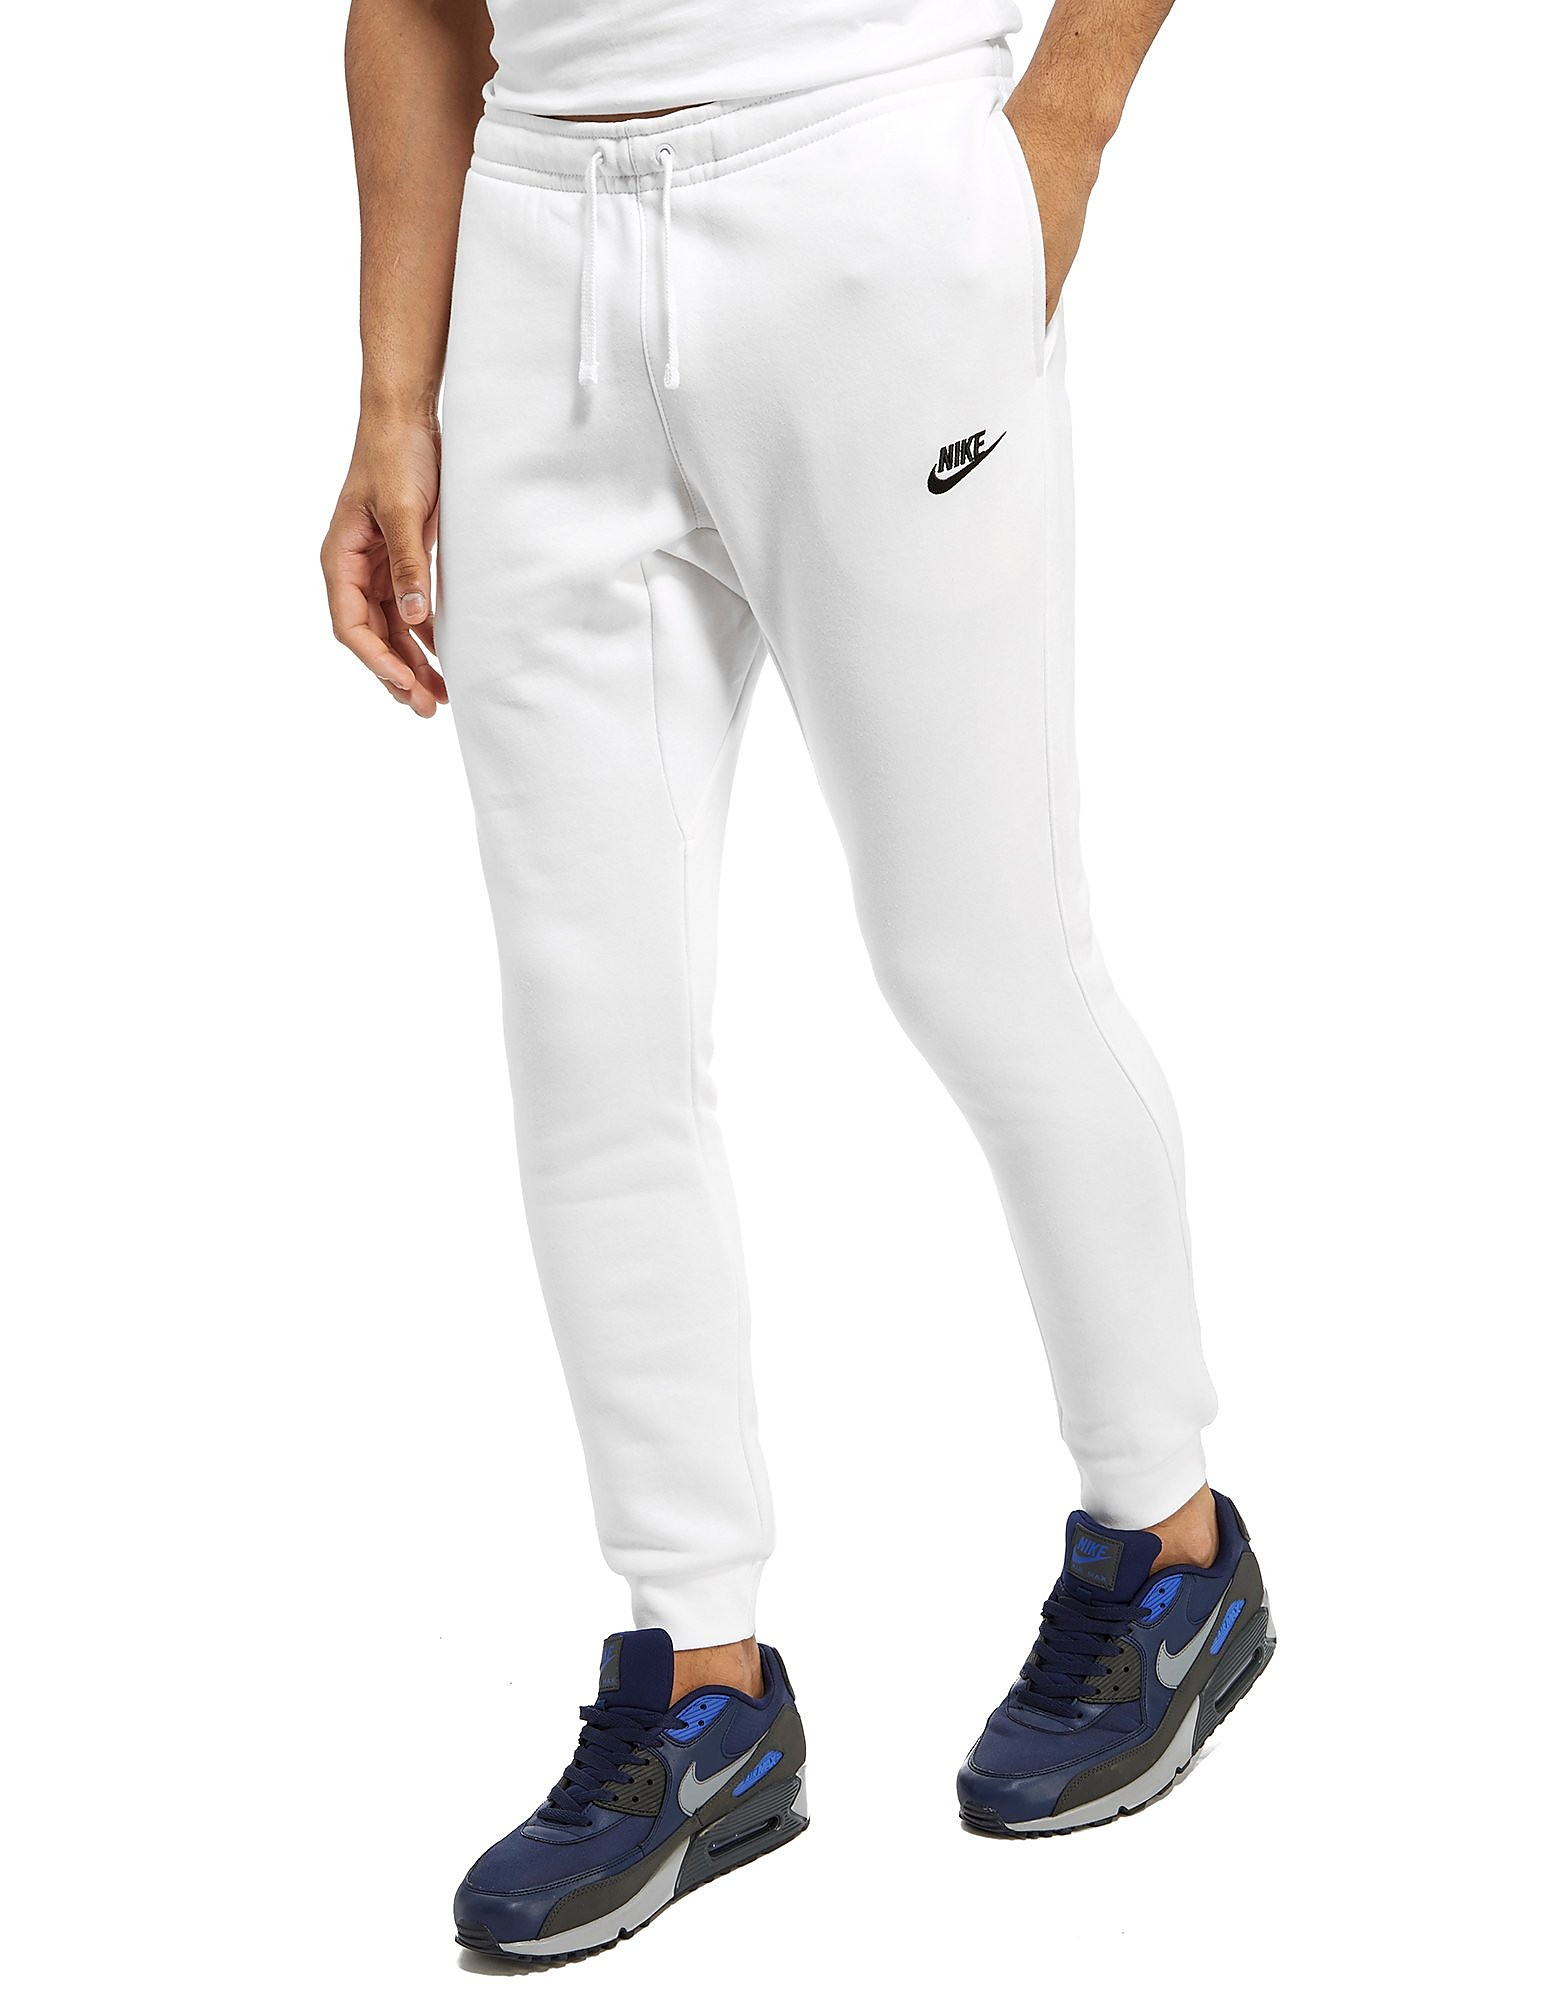 Nike Foundation DC Fleece Pants